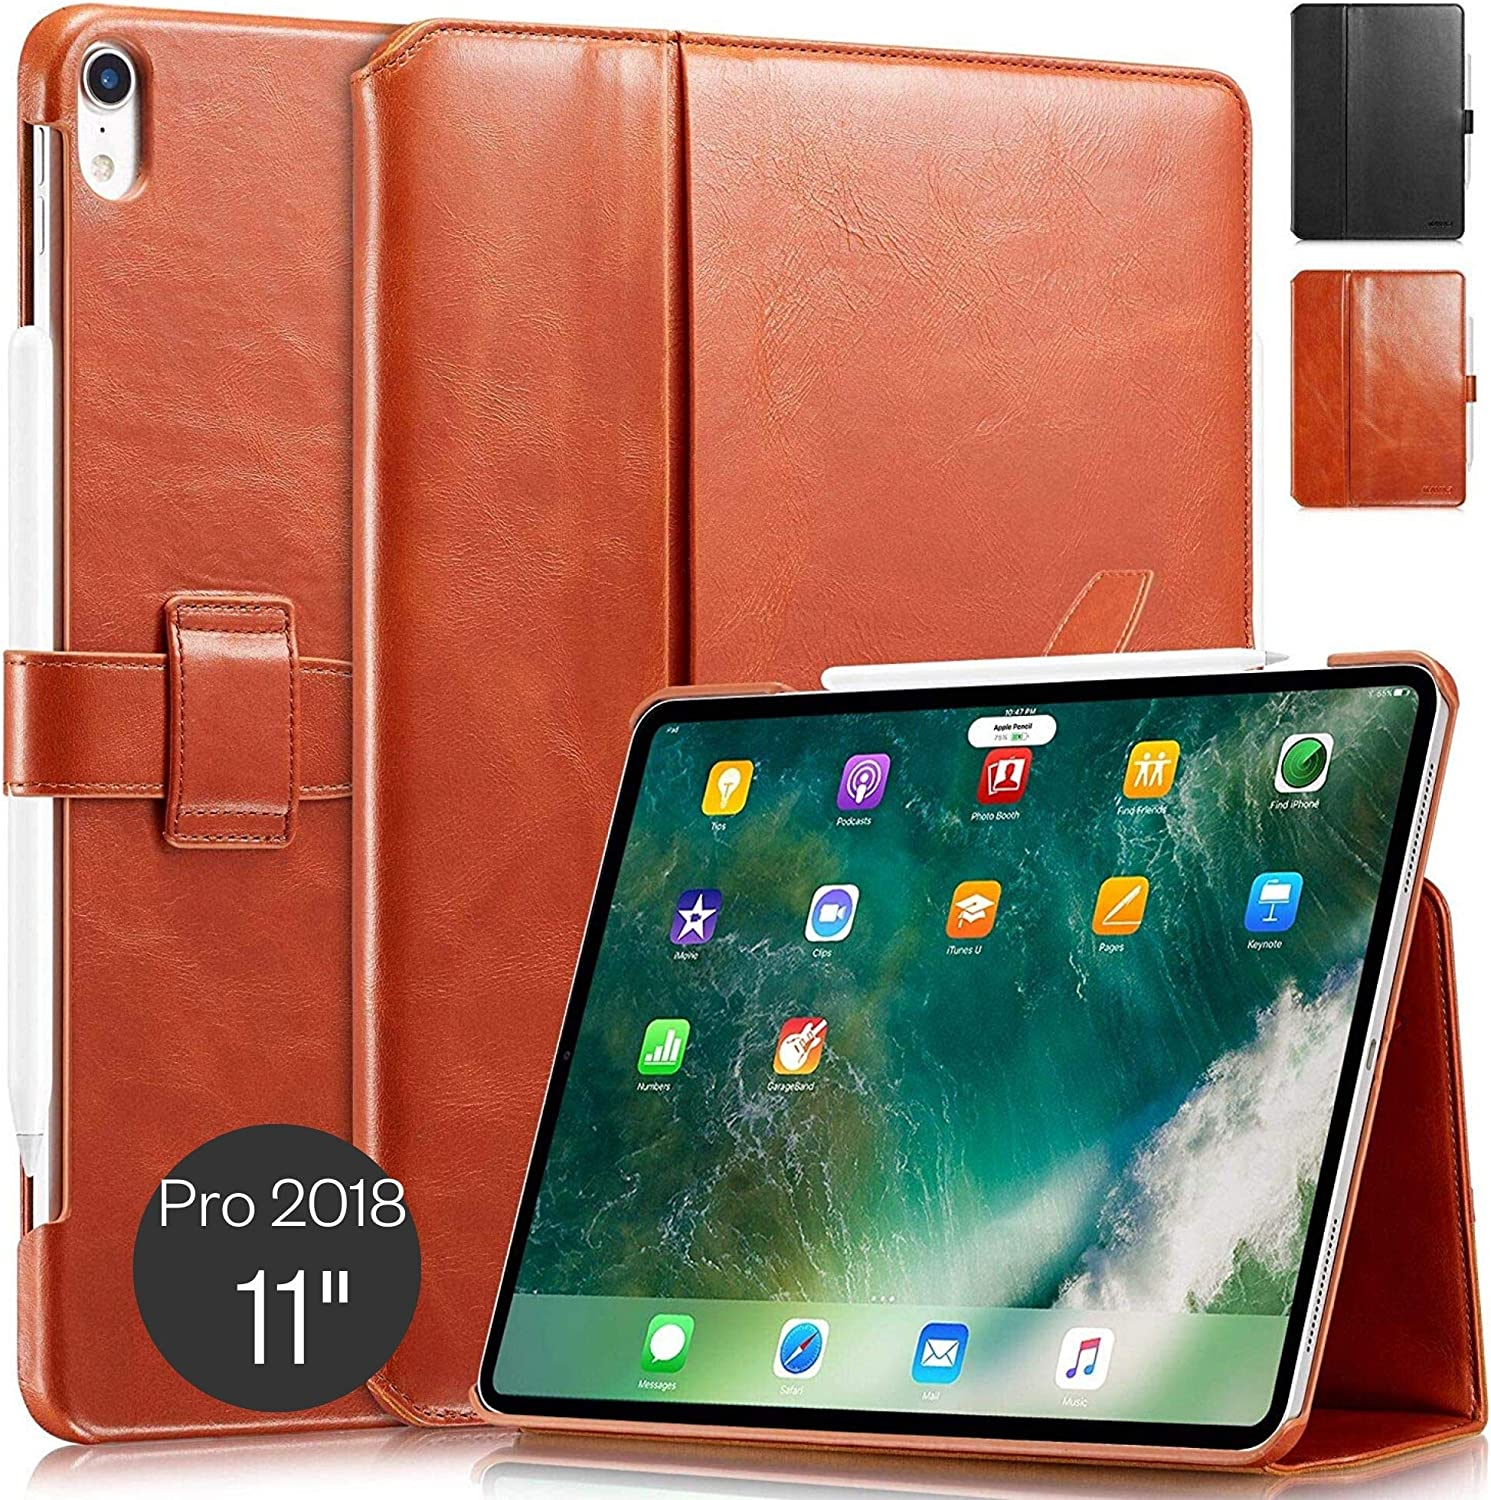 """KAVAJ Case Leather Cover London Works with Apple iPad Pro 11"""" 2018 Cognac-Brown Genuine Cowhide Leather with Pencil Holder Supports Apple Pencil Slim Fit Smart Folio"""